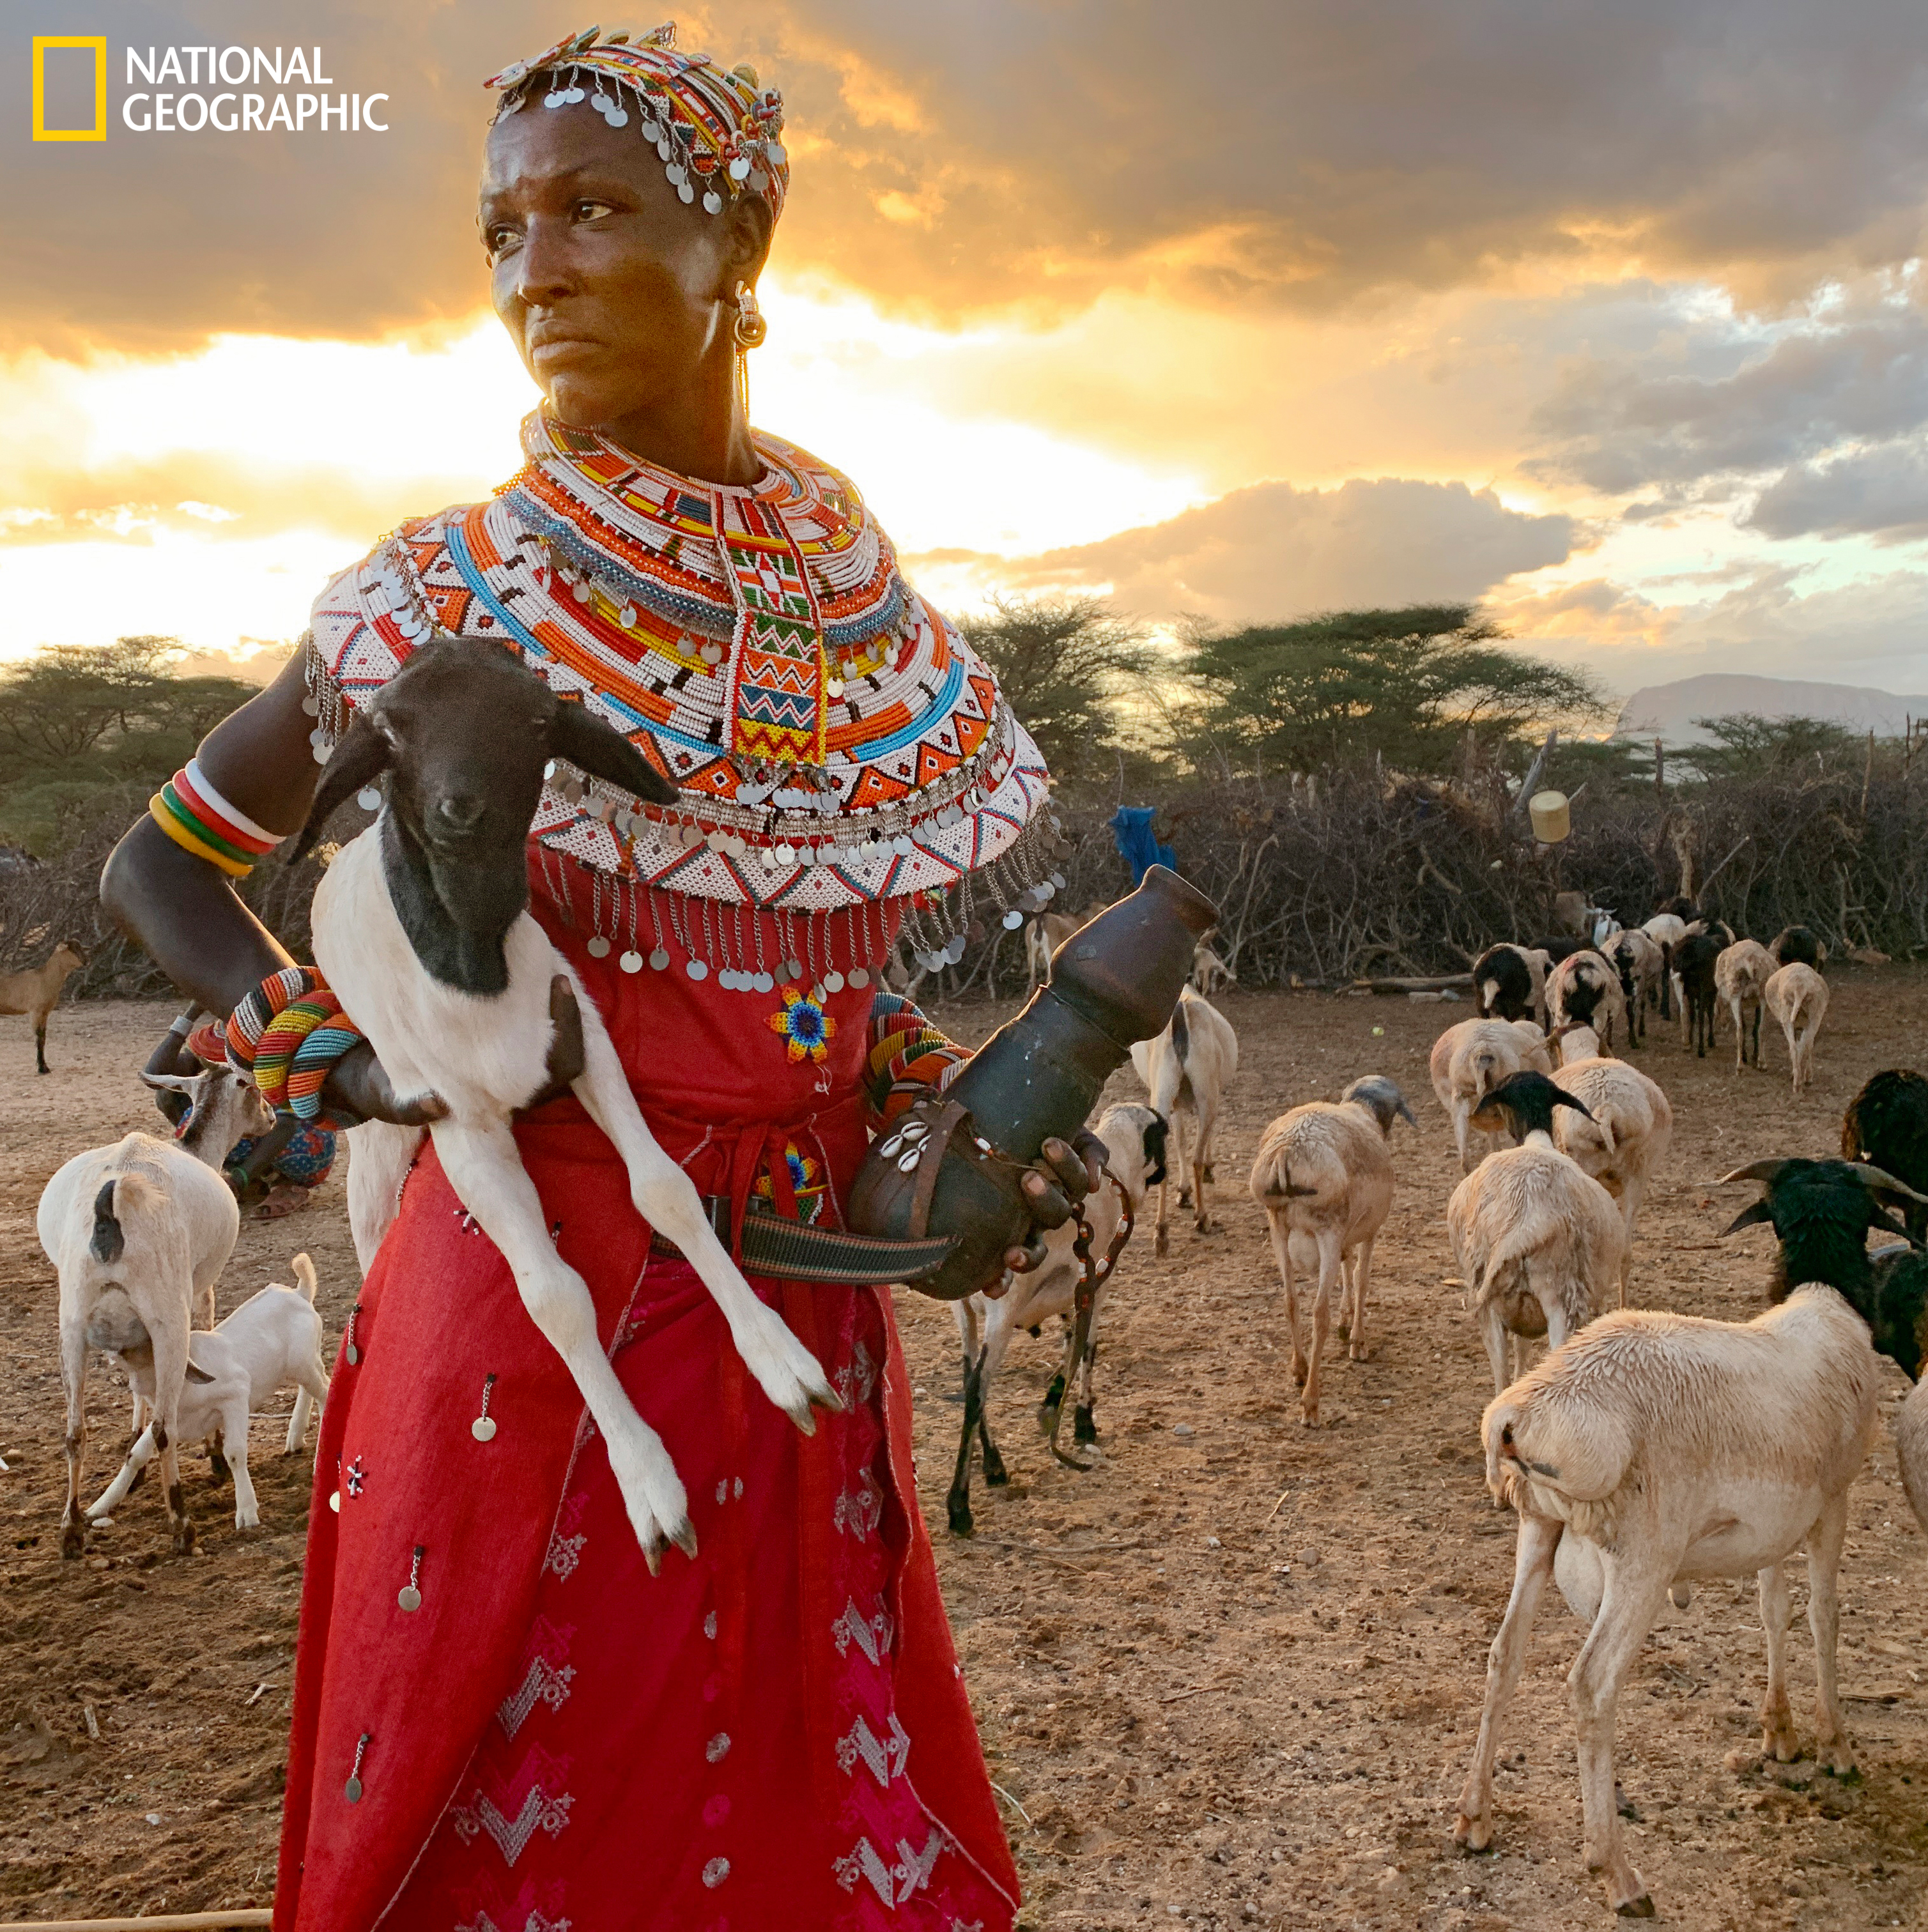 "A mother of three at 23, Mpayon Loboitong'o herds her family's goats on her own; after her husband left to find work in Nairobi, she was told he'd been killed there. Her other full-time job: charting animal movements for Save the Elephants. For a monthly salary she and eight other women traverse the bush, unarmed, amid elephants, lions, and African buffalo. ""I do this work so my kids don't go to bed hungry,"" she says."